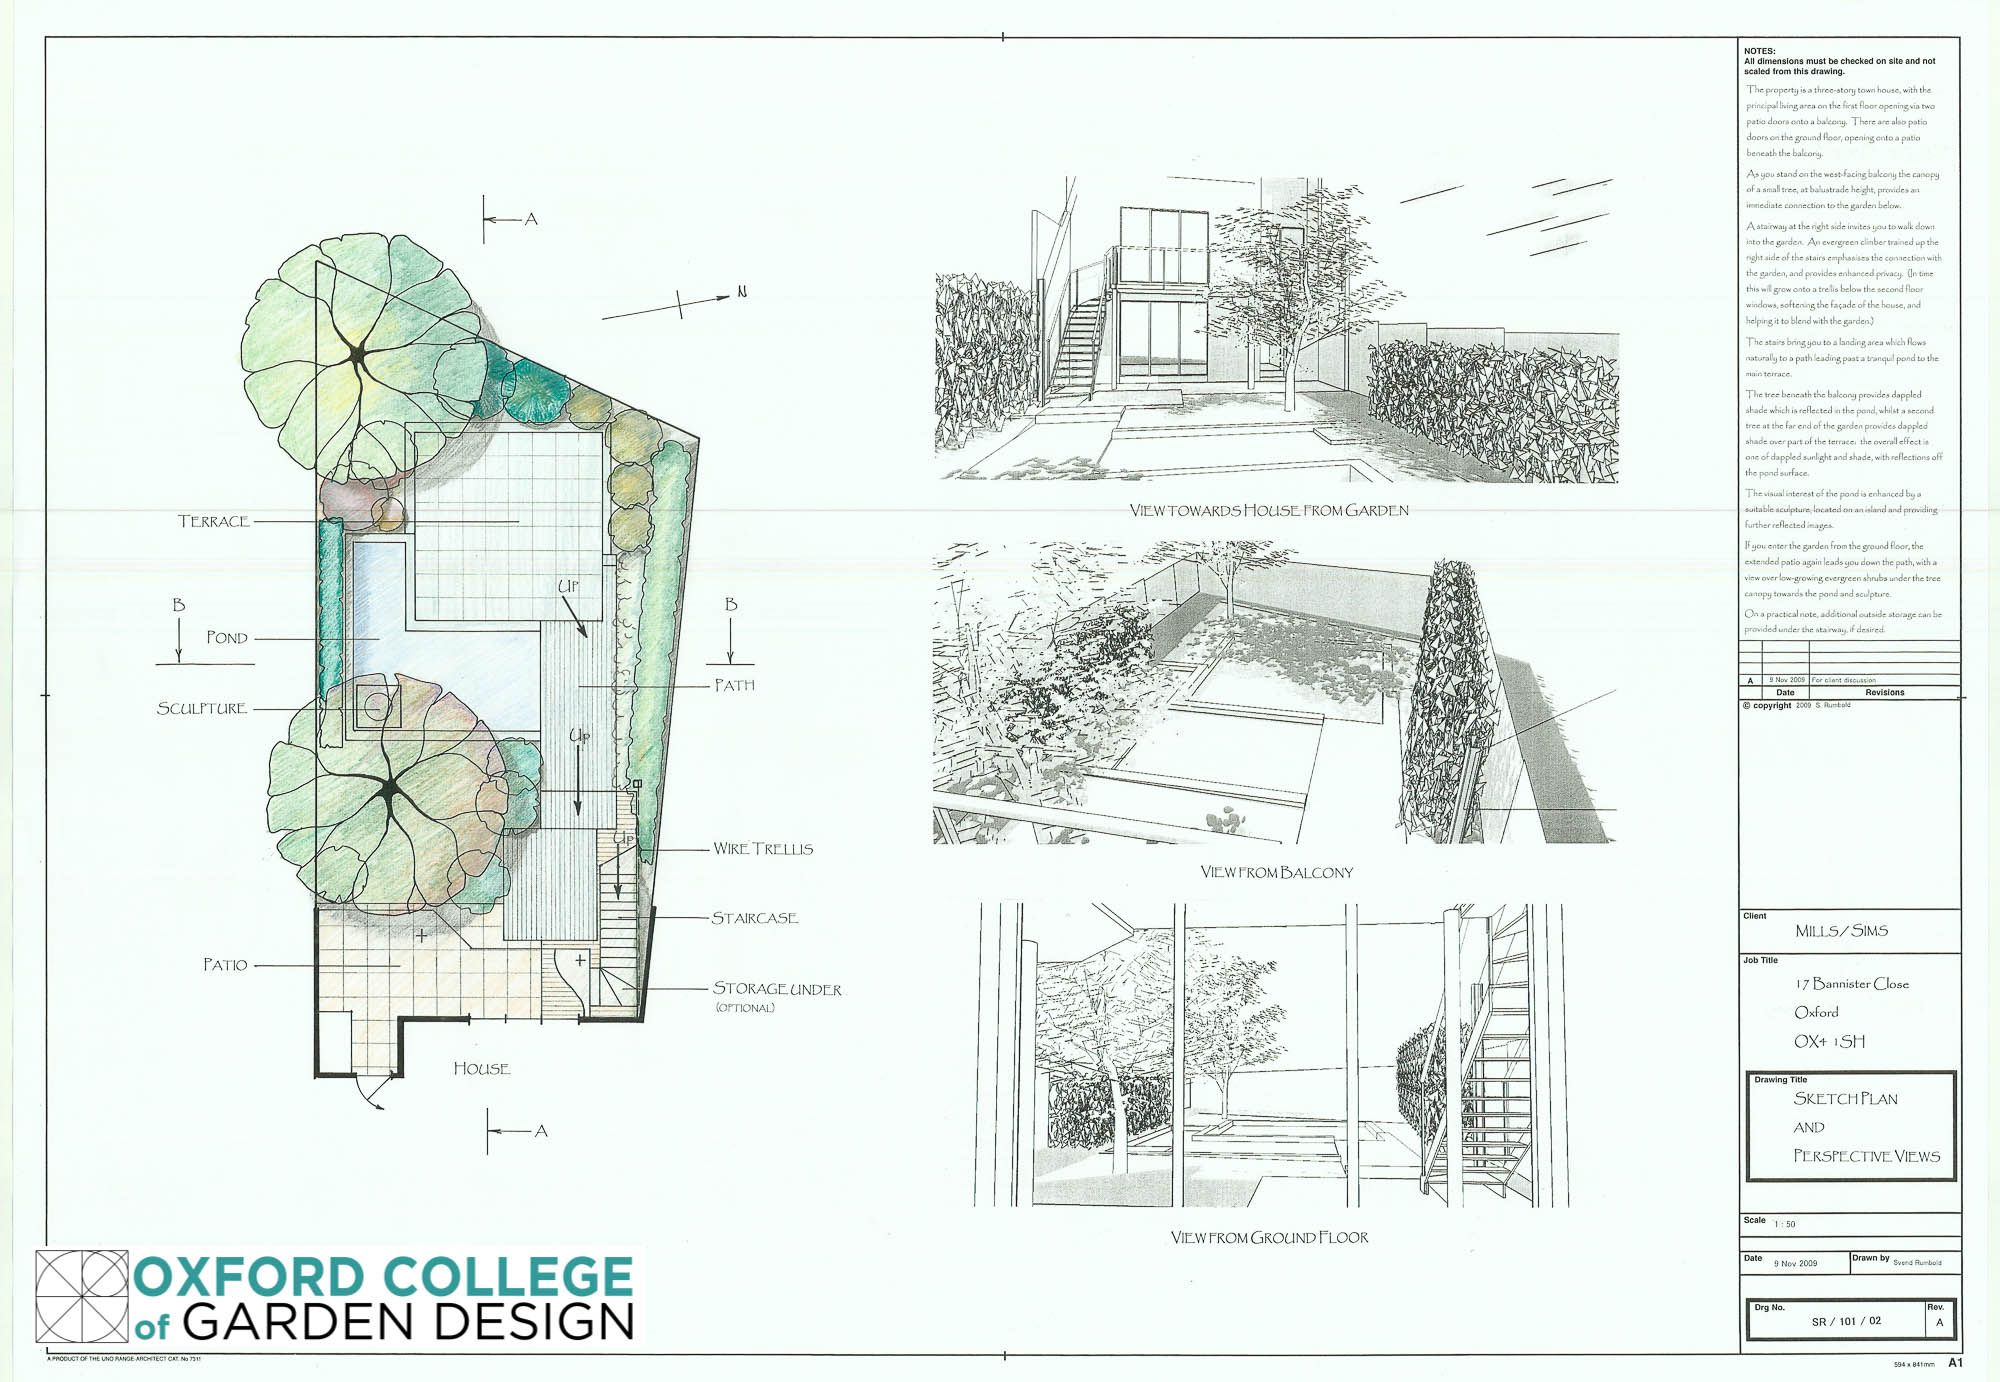 House garden design drawing - Project 1 Courtyard Garden Comprising Sketch Plan Bubble Diagram Planting Plan 3d Perspective